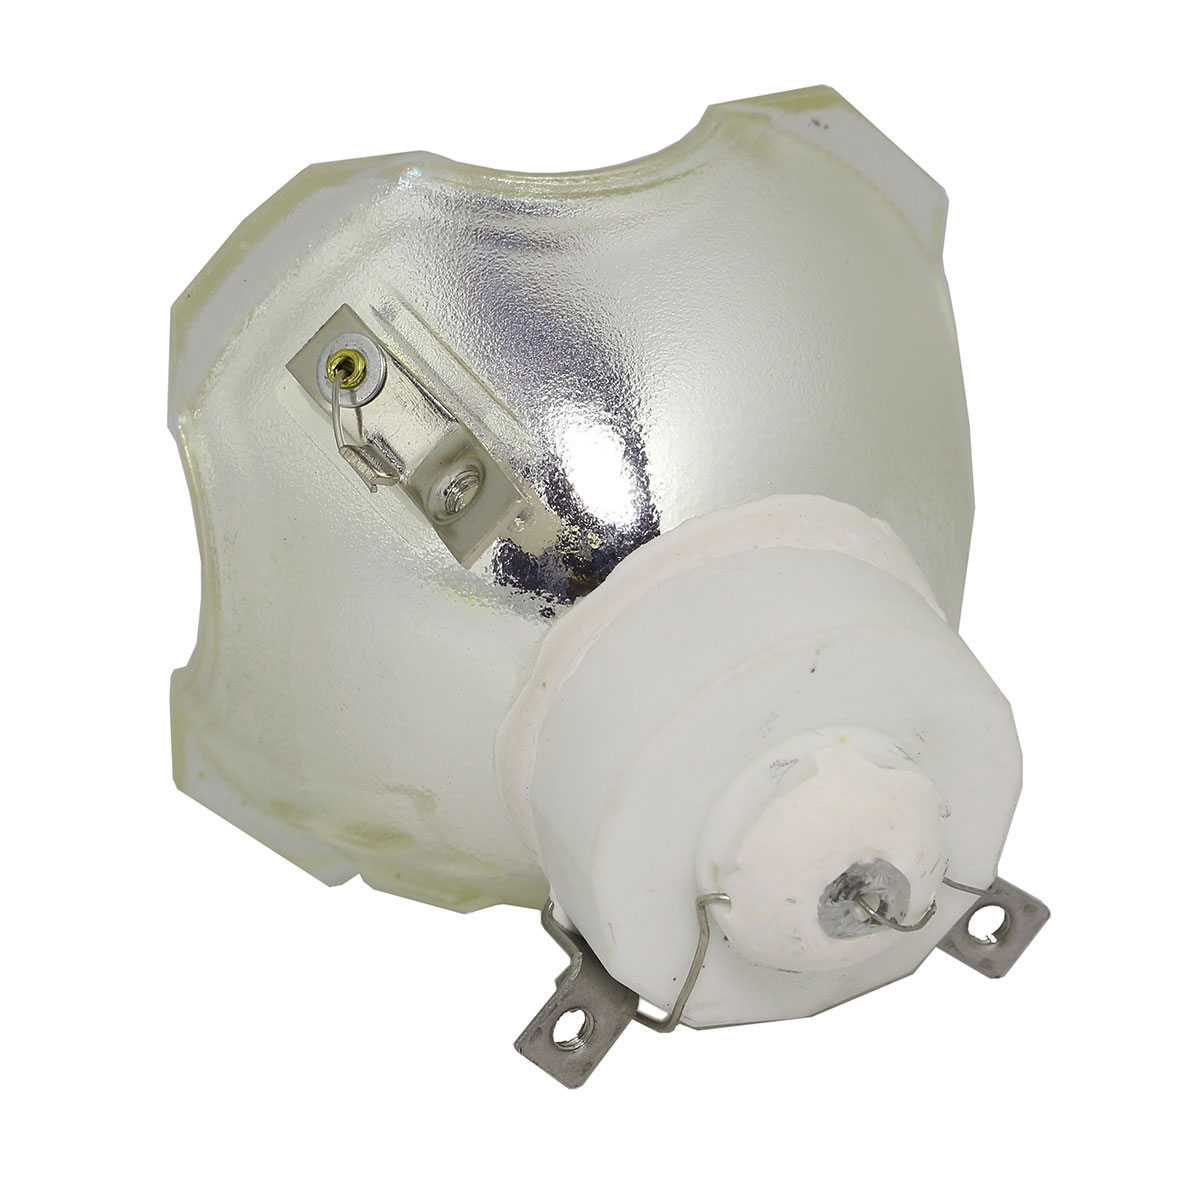 Lutema Economy Bulb for Mitsubishi LW-6100 Projector (Lamp Only) - image 2 of 5